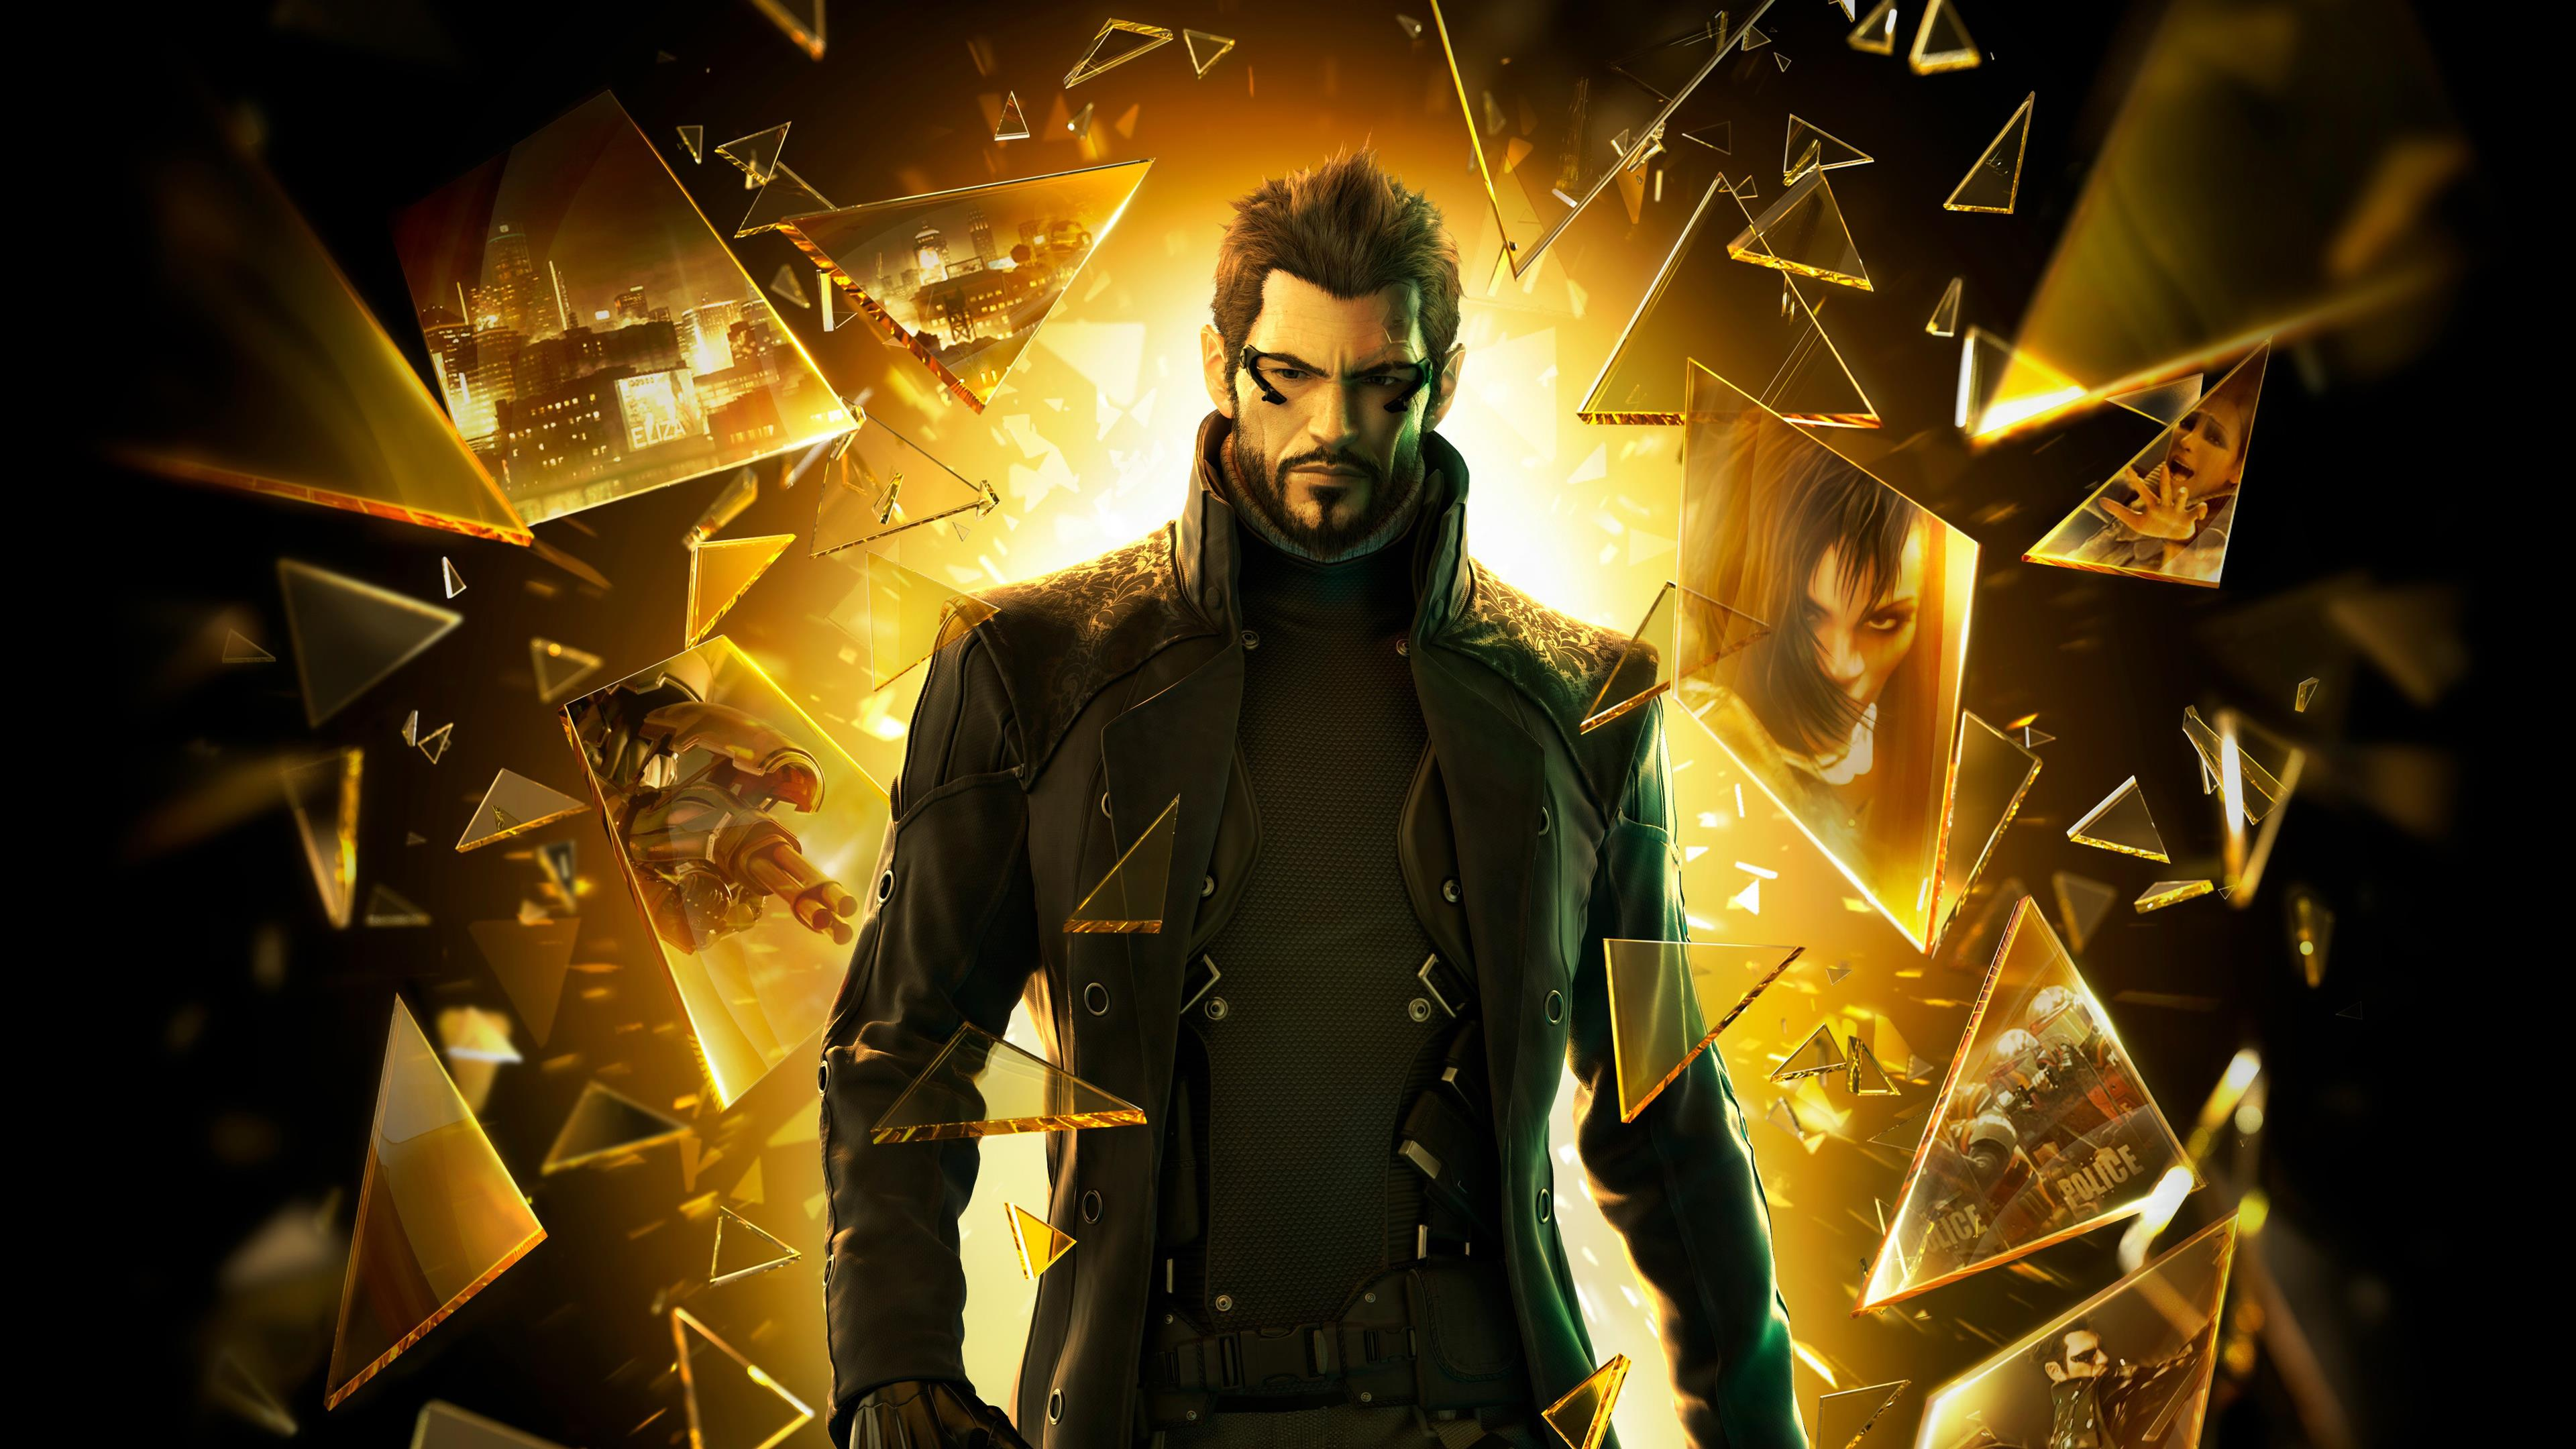 Adam Jensen, backed by a lot of yellow